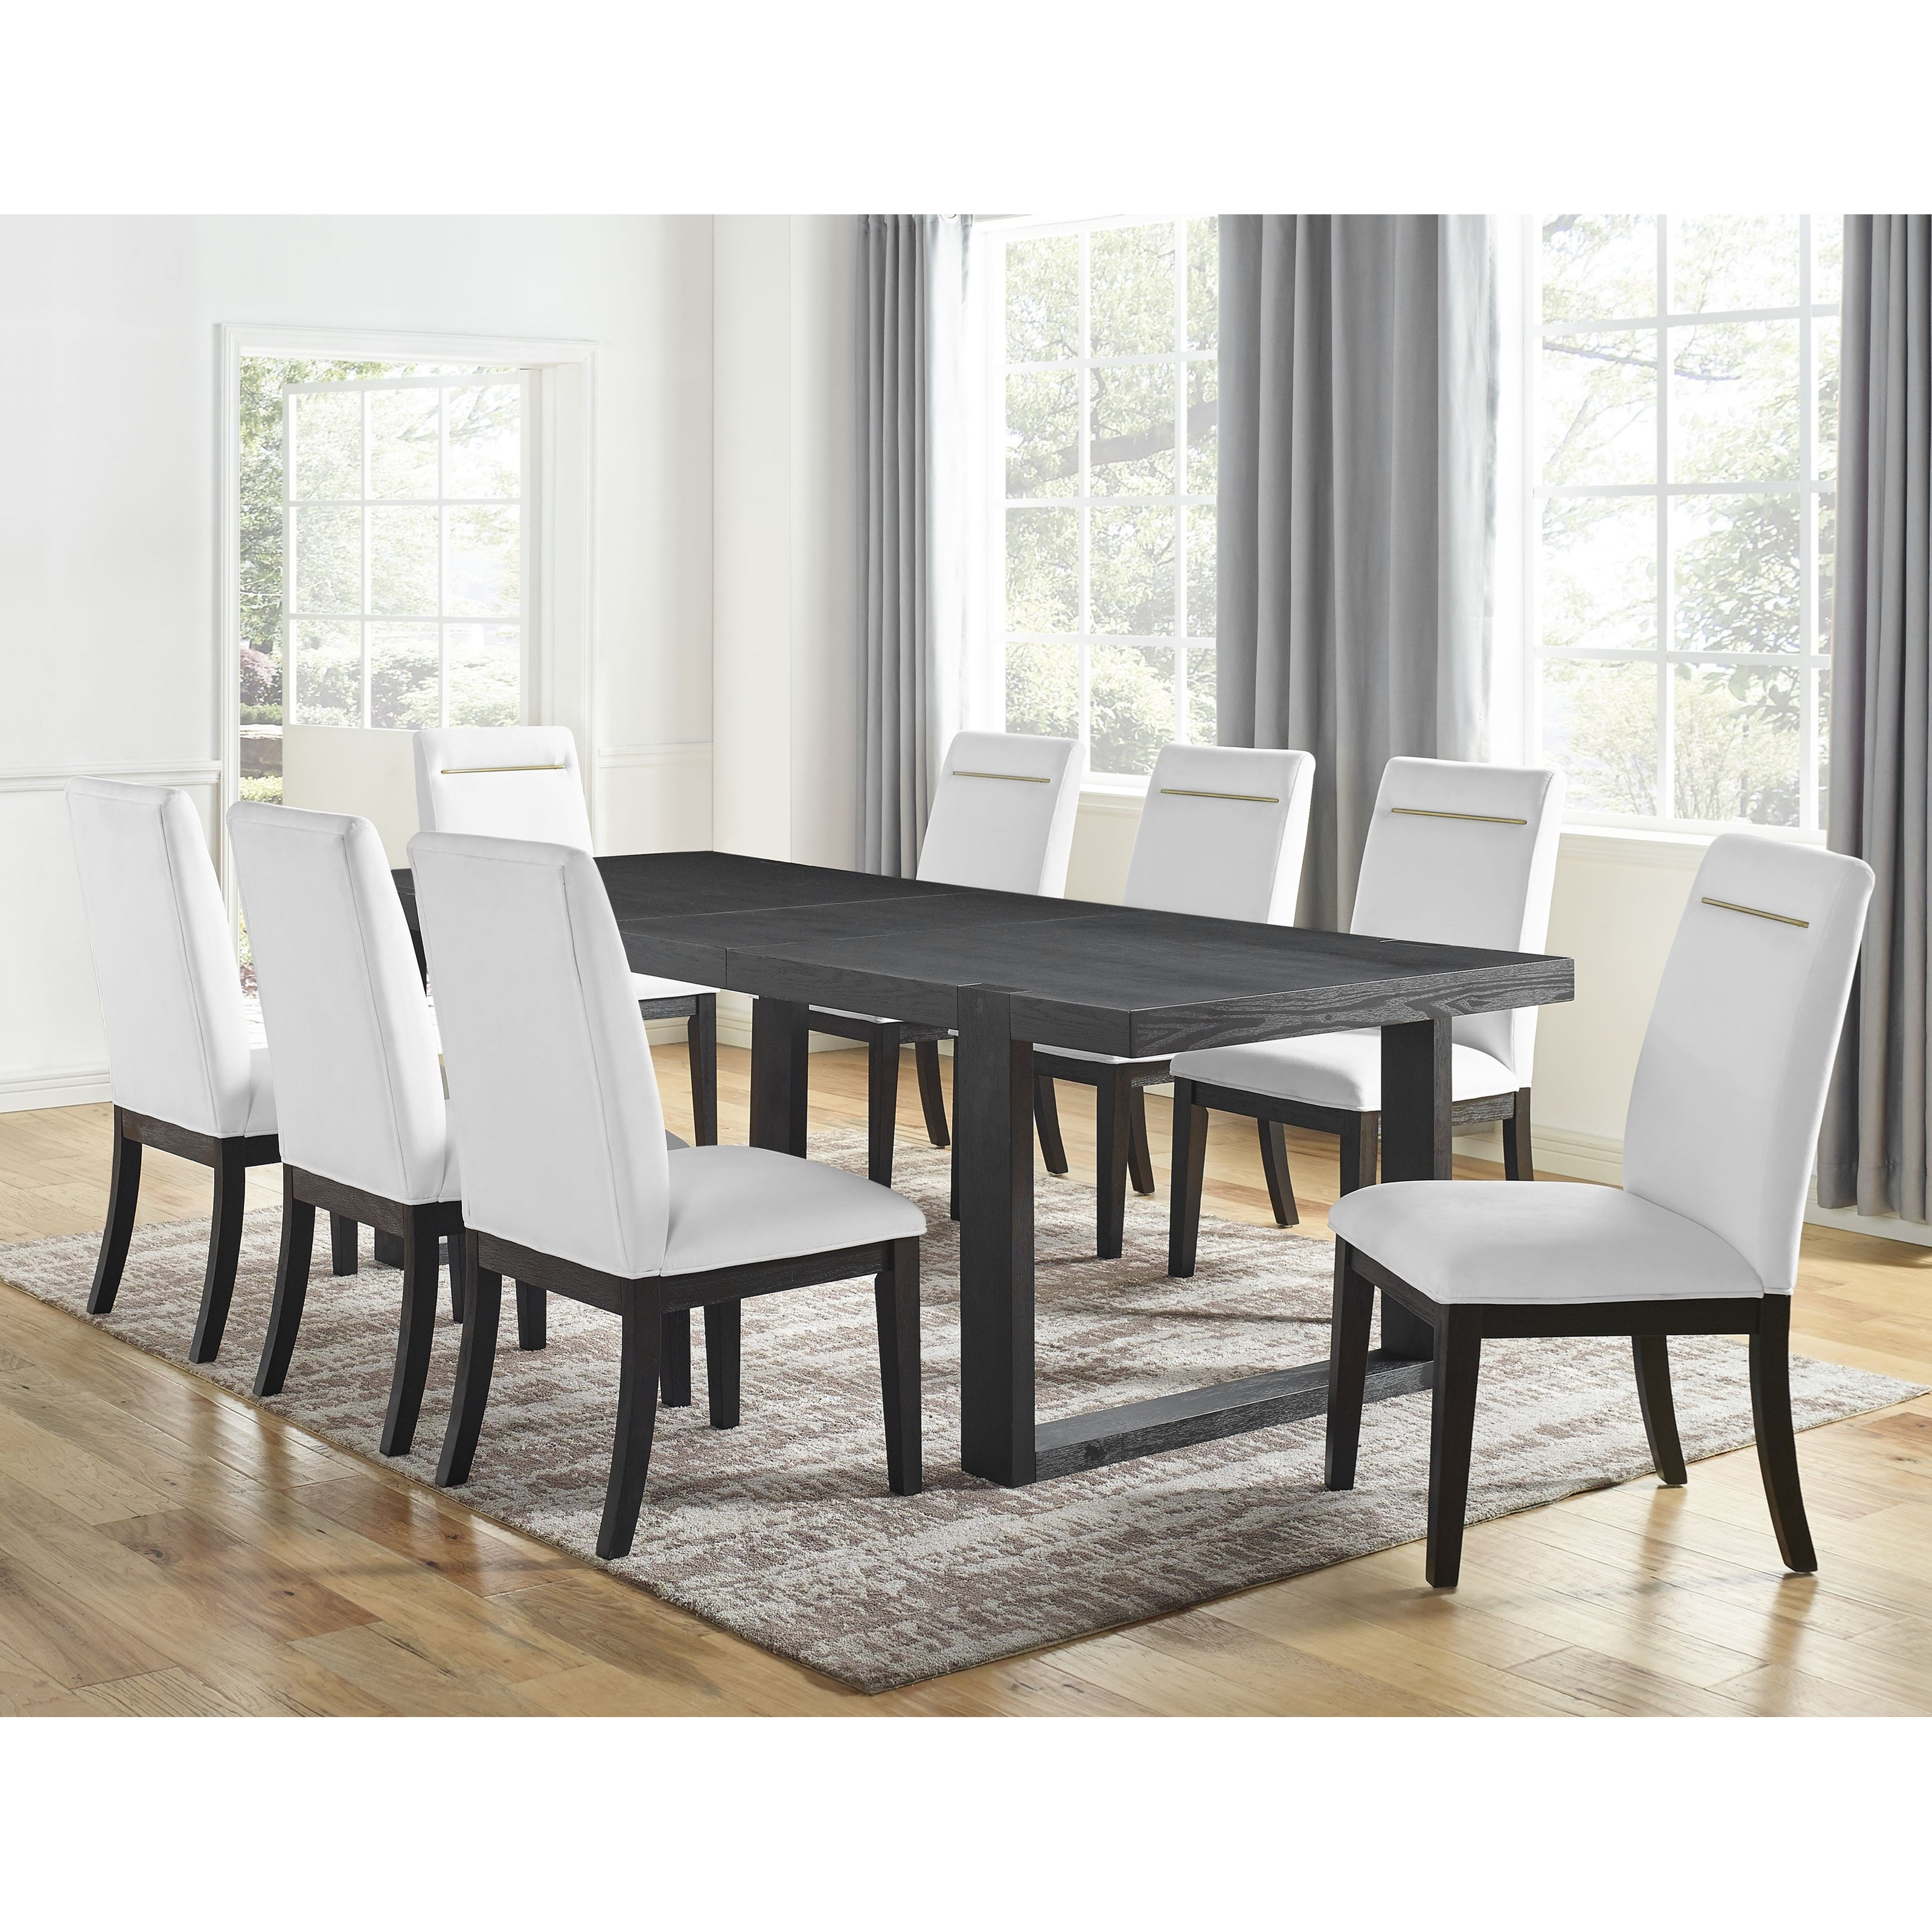 Yves 9-Piece Table and Chair Set by Steve Silver at Northeast Factory Direct